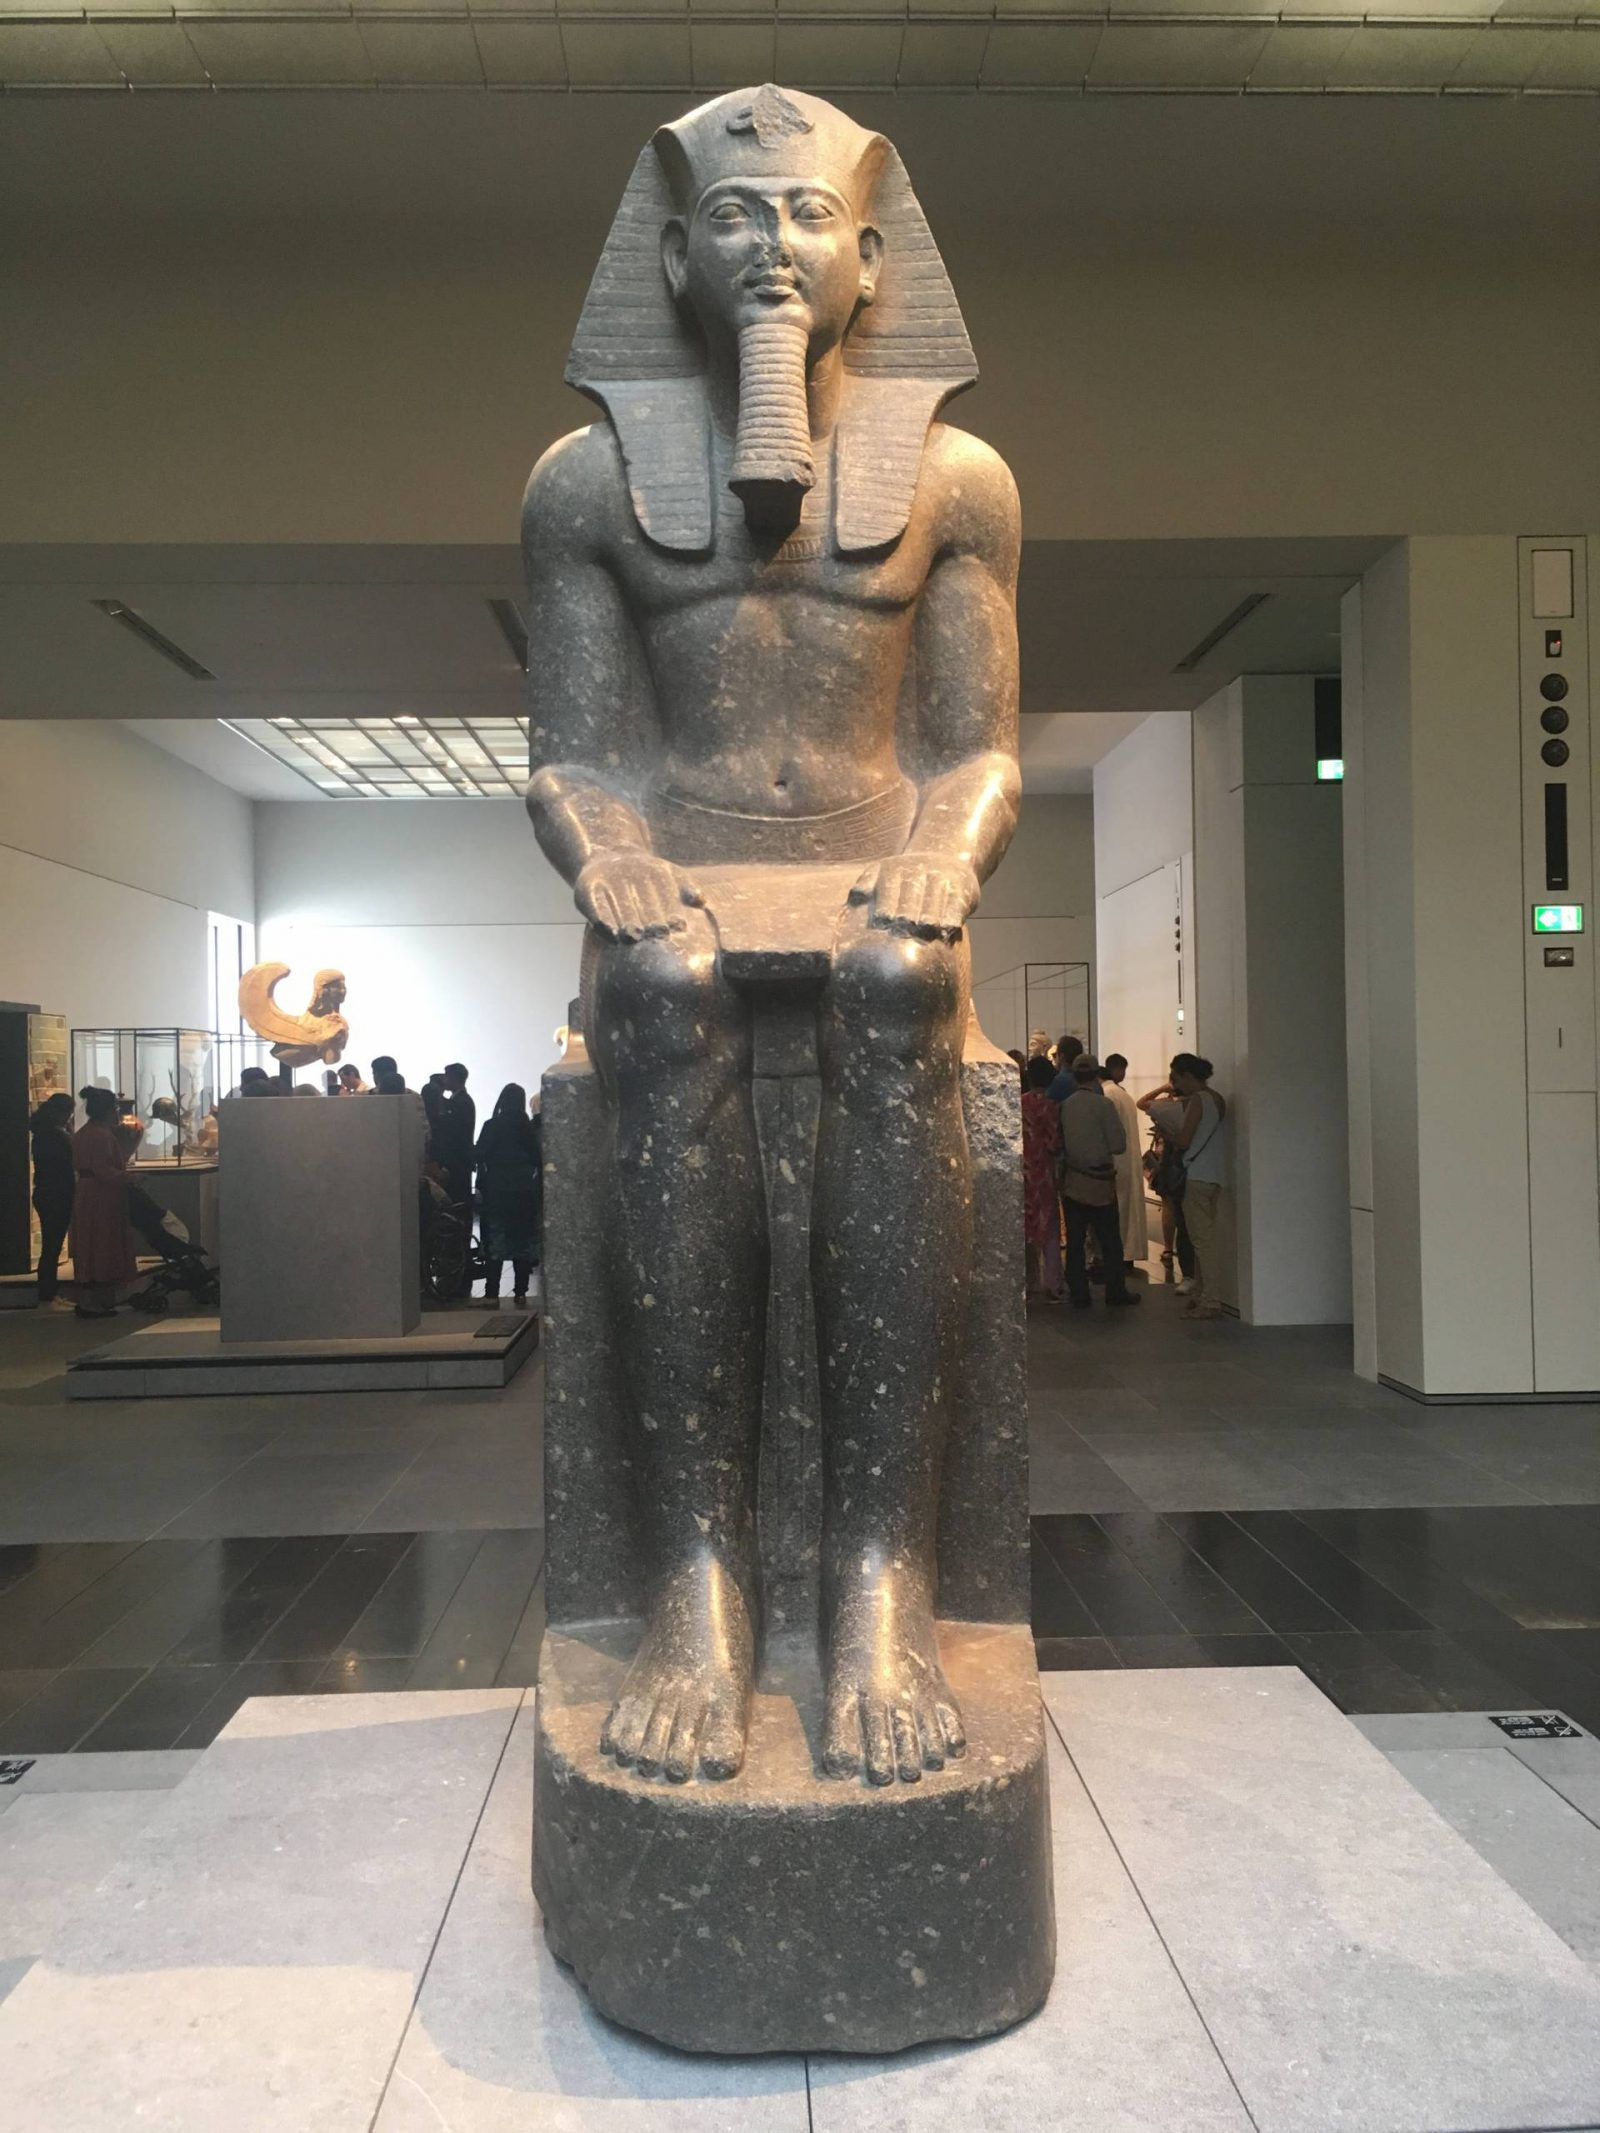 Visiting the Louvre Abu Dhabi and Sheikh Zayed Grand Mosque, Ramses II statue